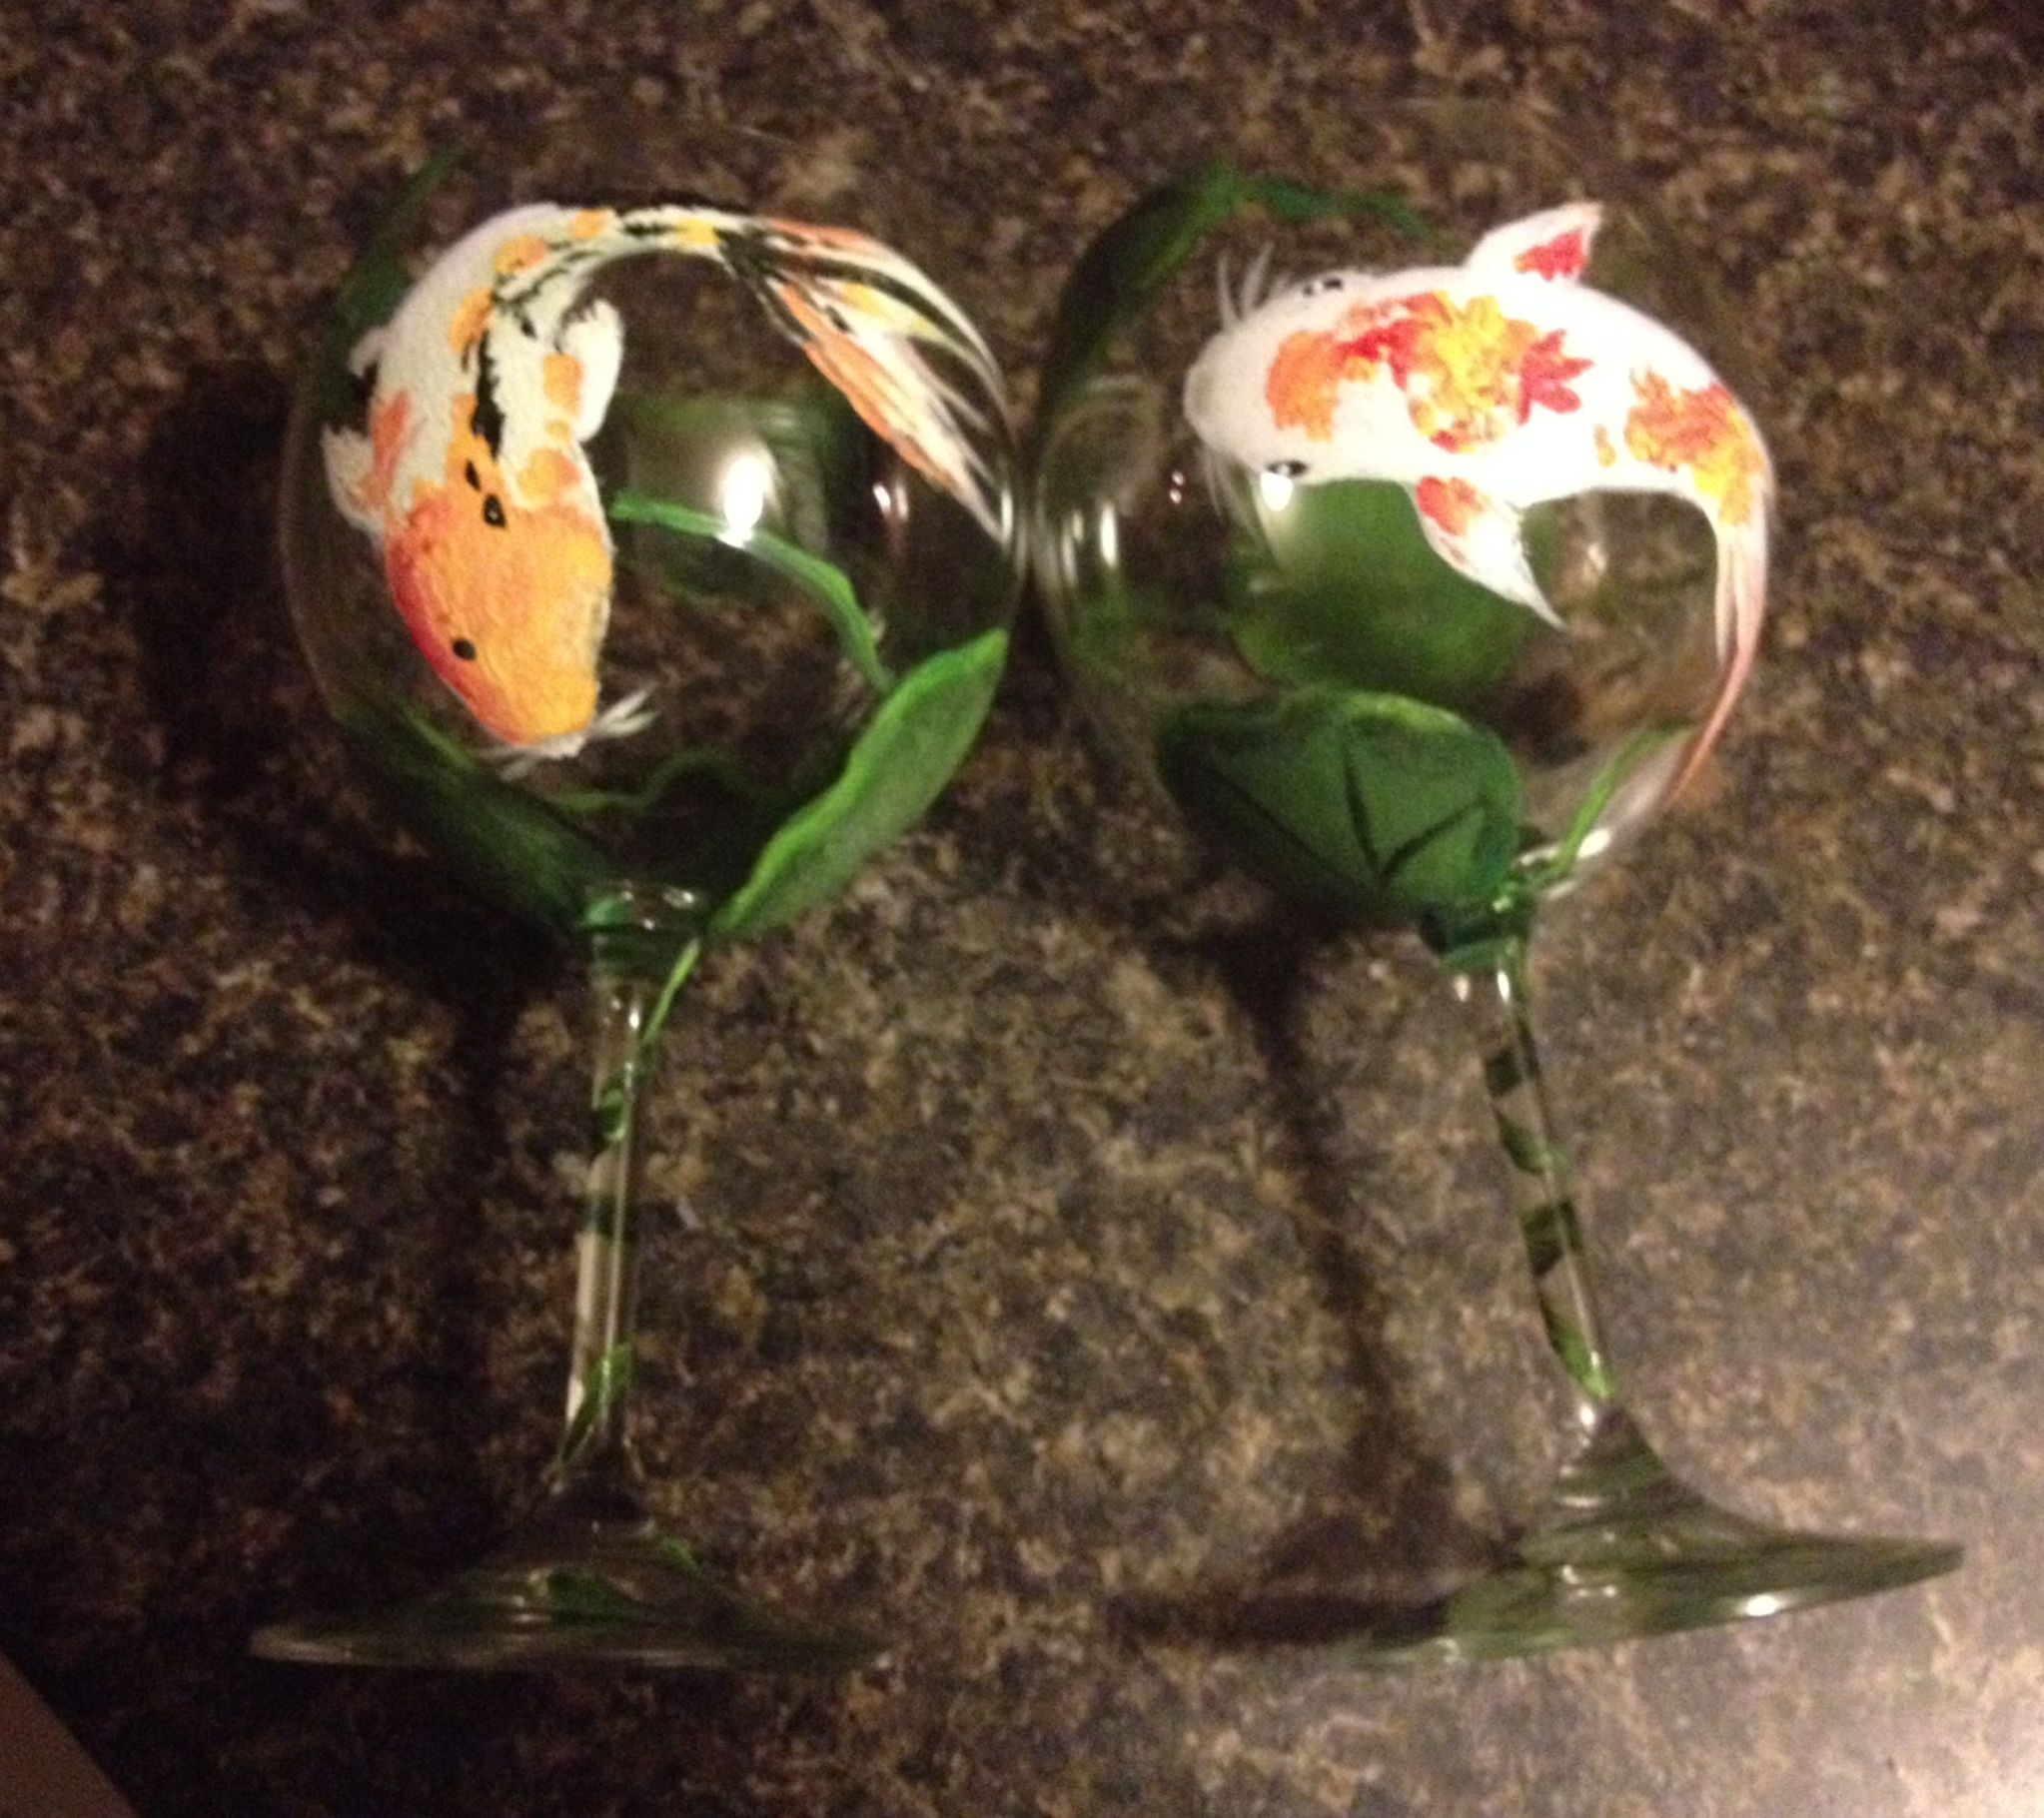 These are my favorite wine glasses I have painted to date.  These are a pair of koi fish hand painted on wine glasses - there are lily pads around the glass and the stem wraps around each stem and there are leaves along the base.  Asking $30 for the pair plus shipping